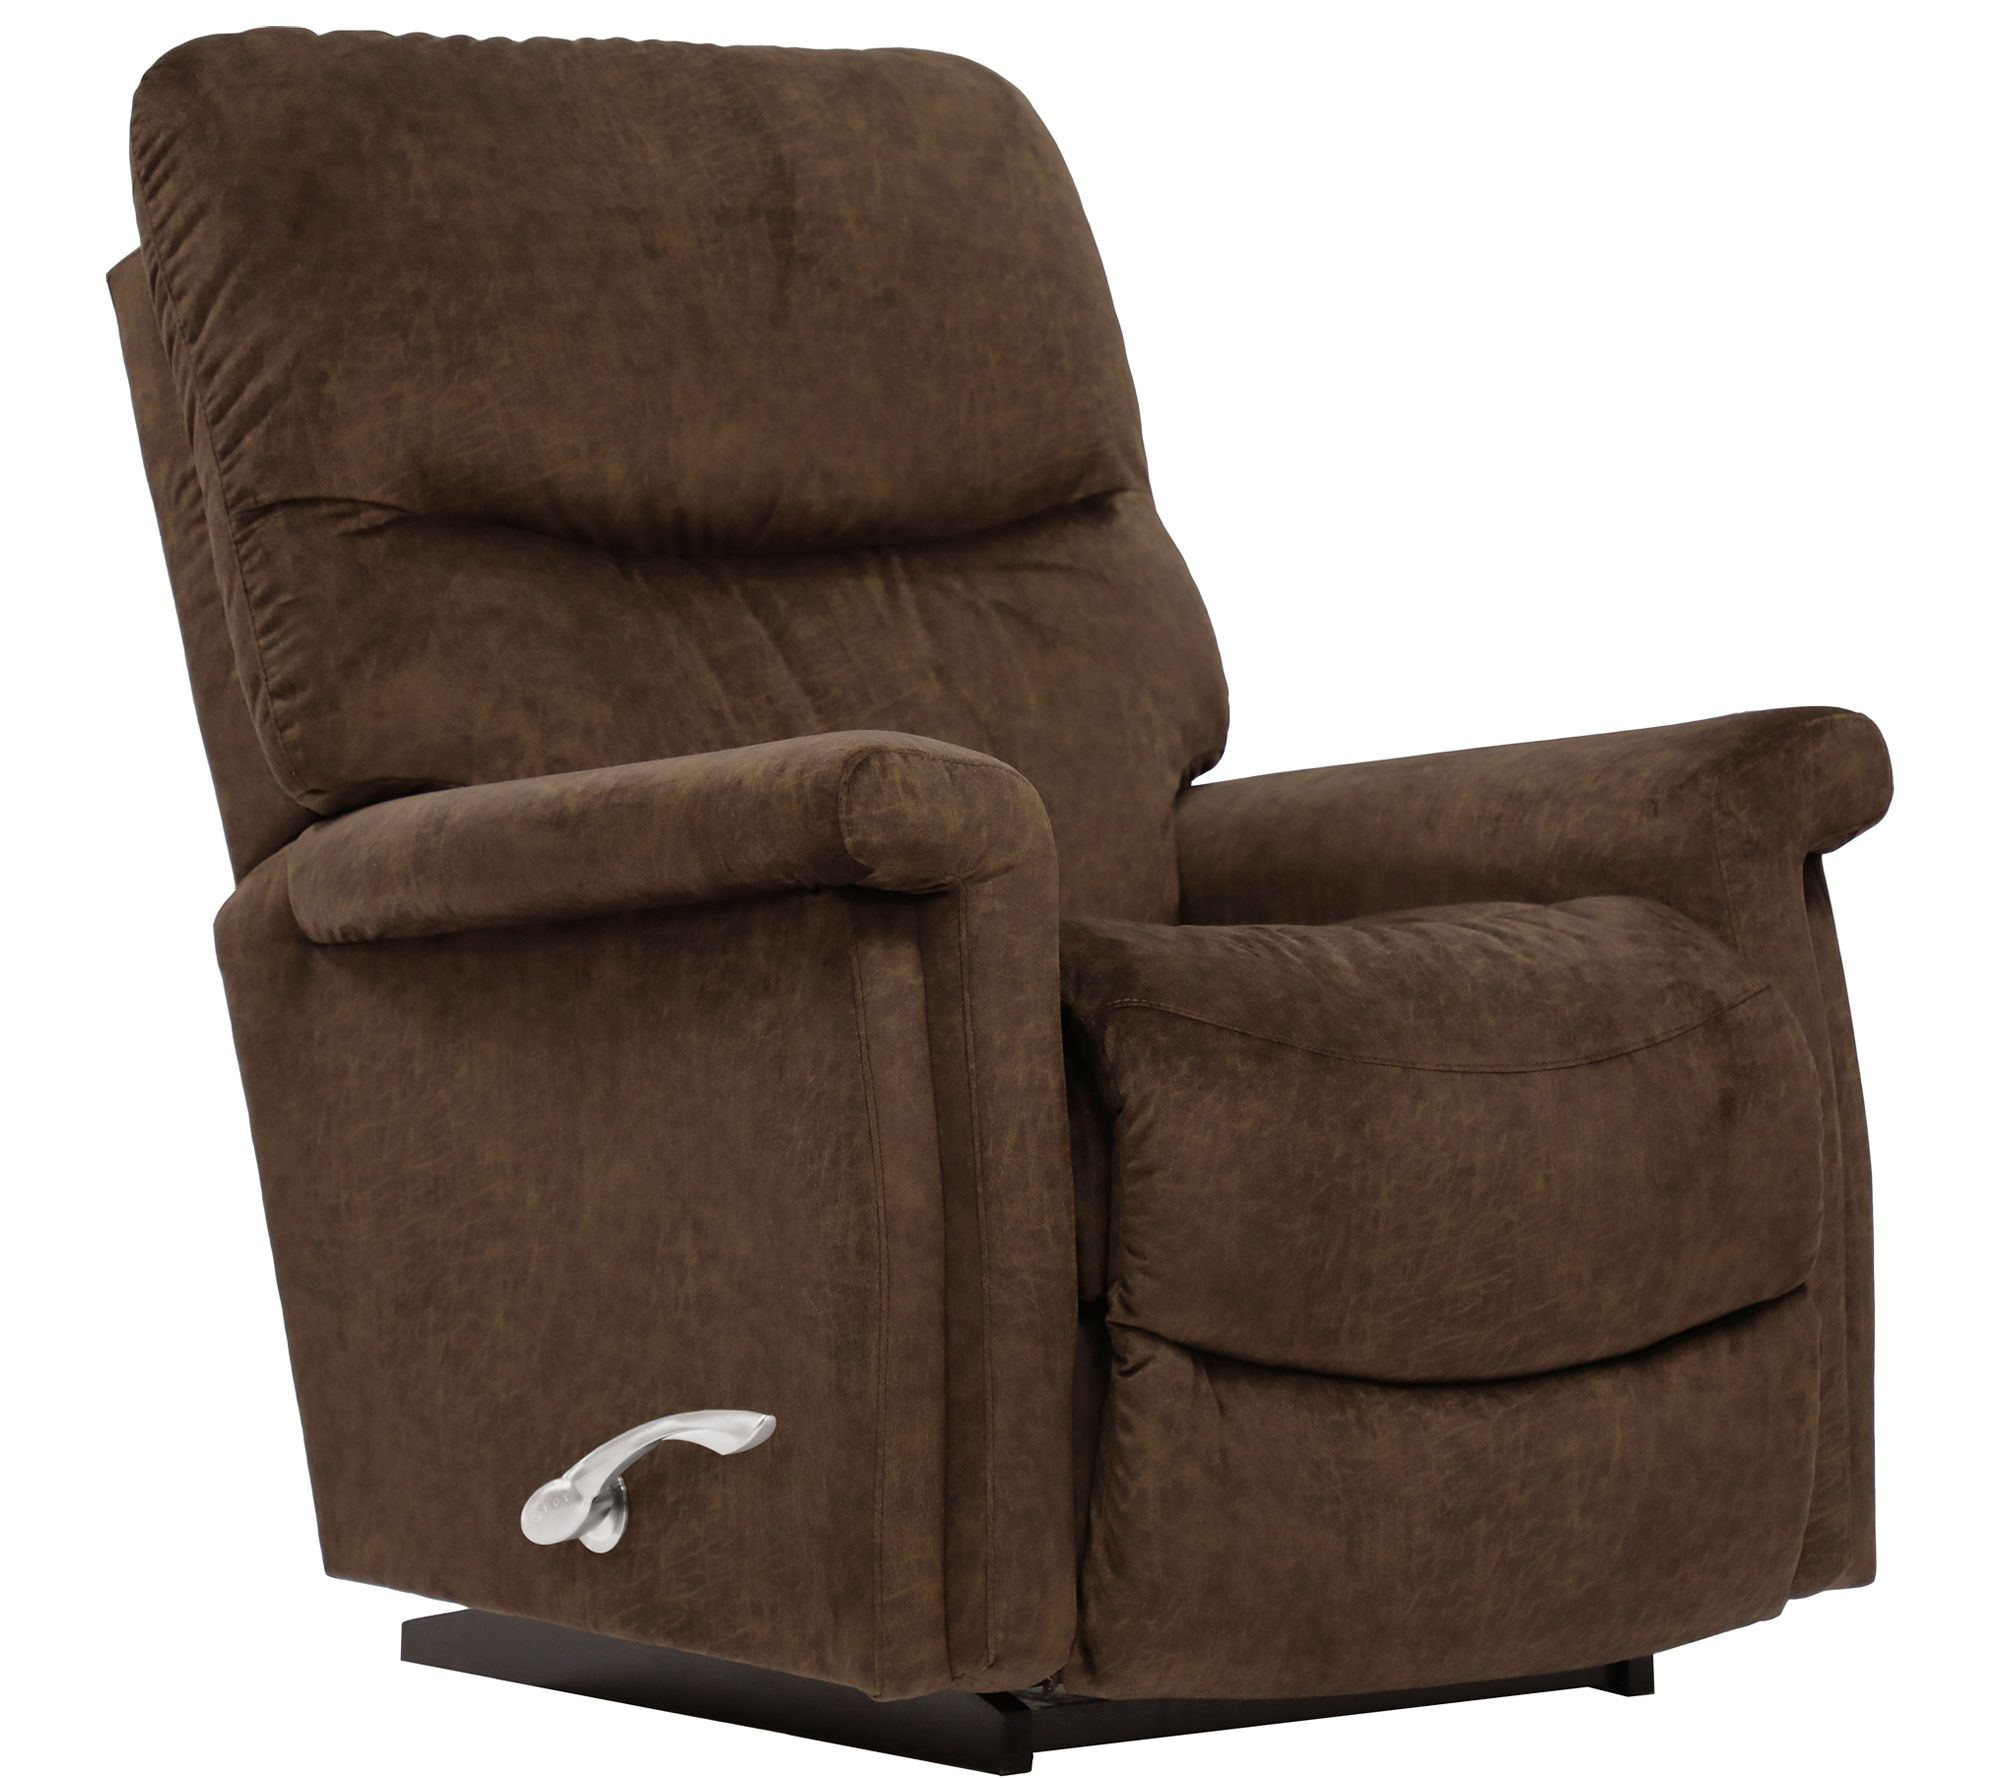 Strange La Z Boy Manual Baylor Recliner Qvc Com Caraccident5 Cool Chair Designs And Ideas Caraccident5Info